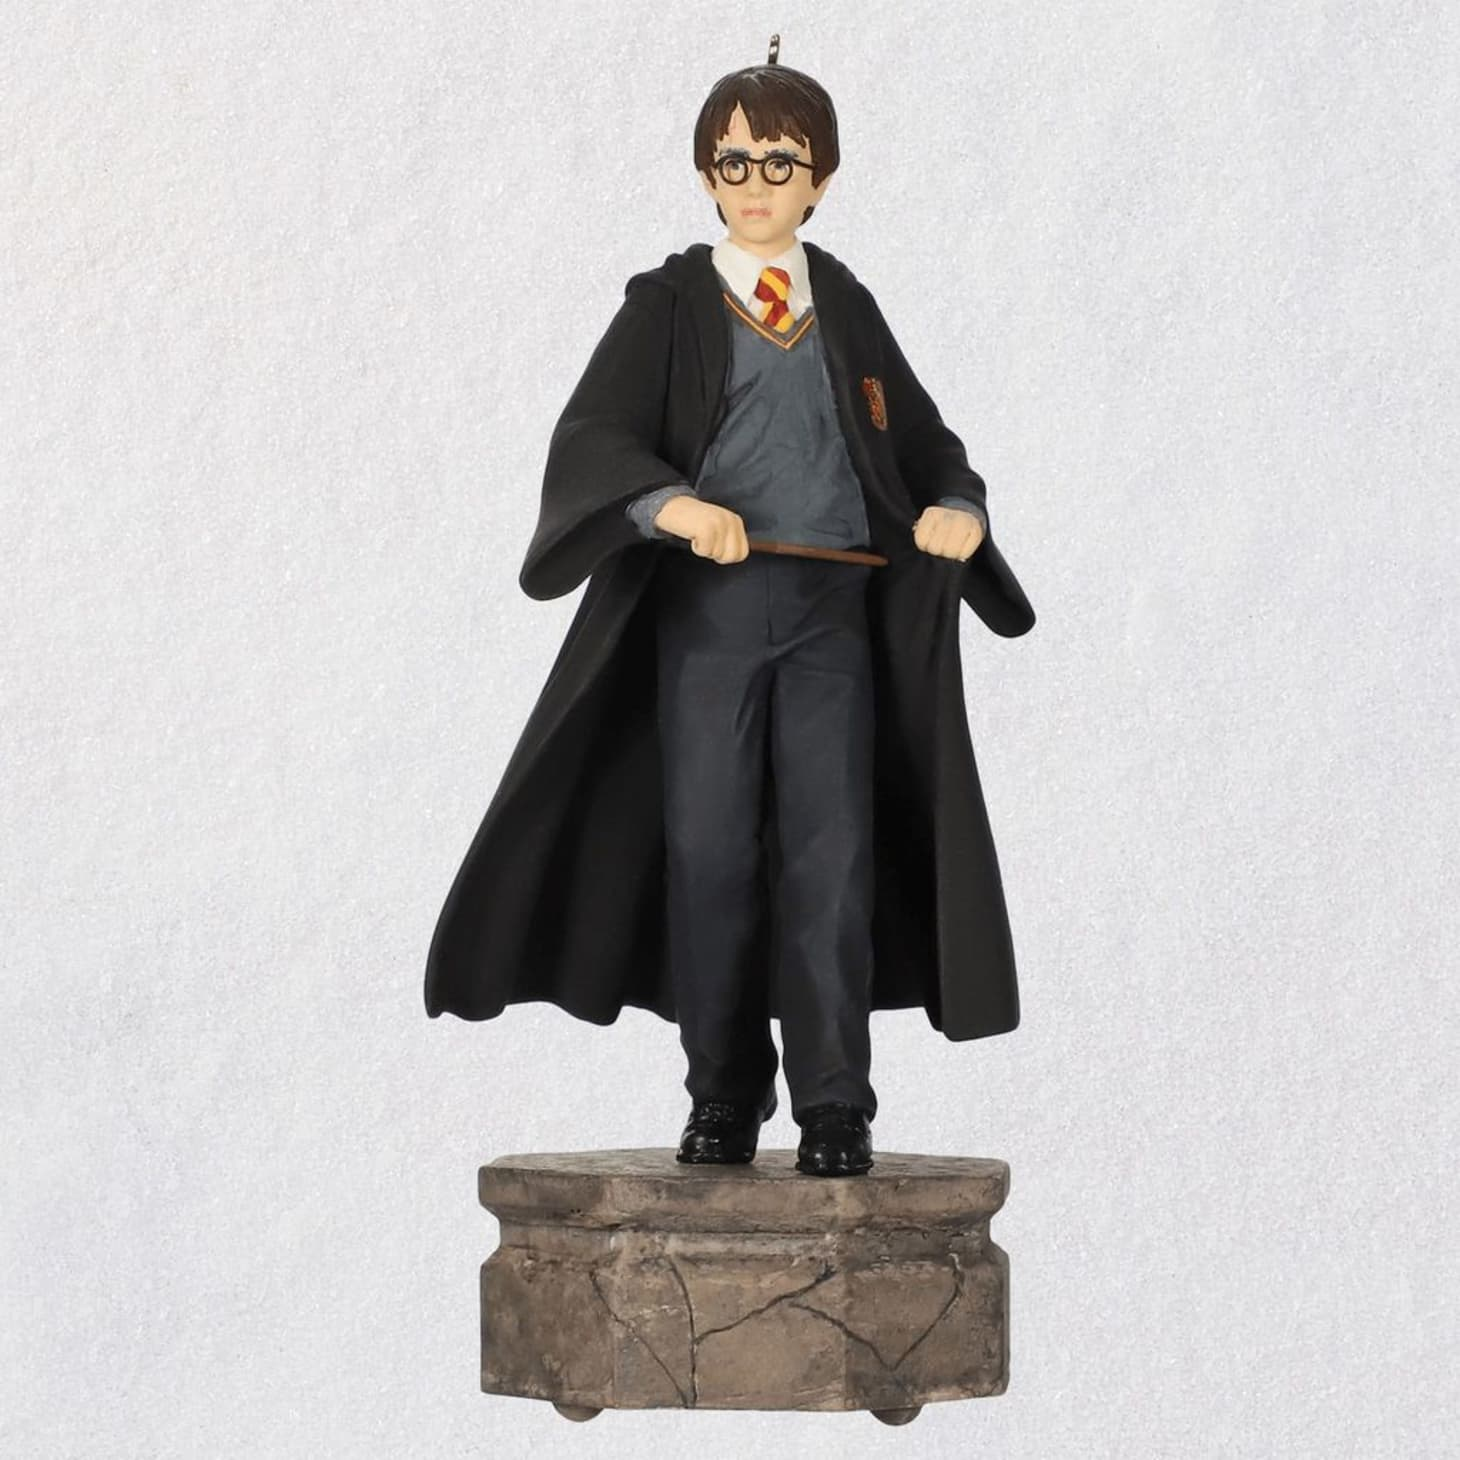 Musical Harry Potter Christmas Tree Topper Apartment Therapy